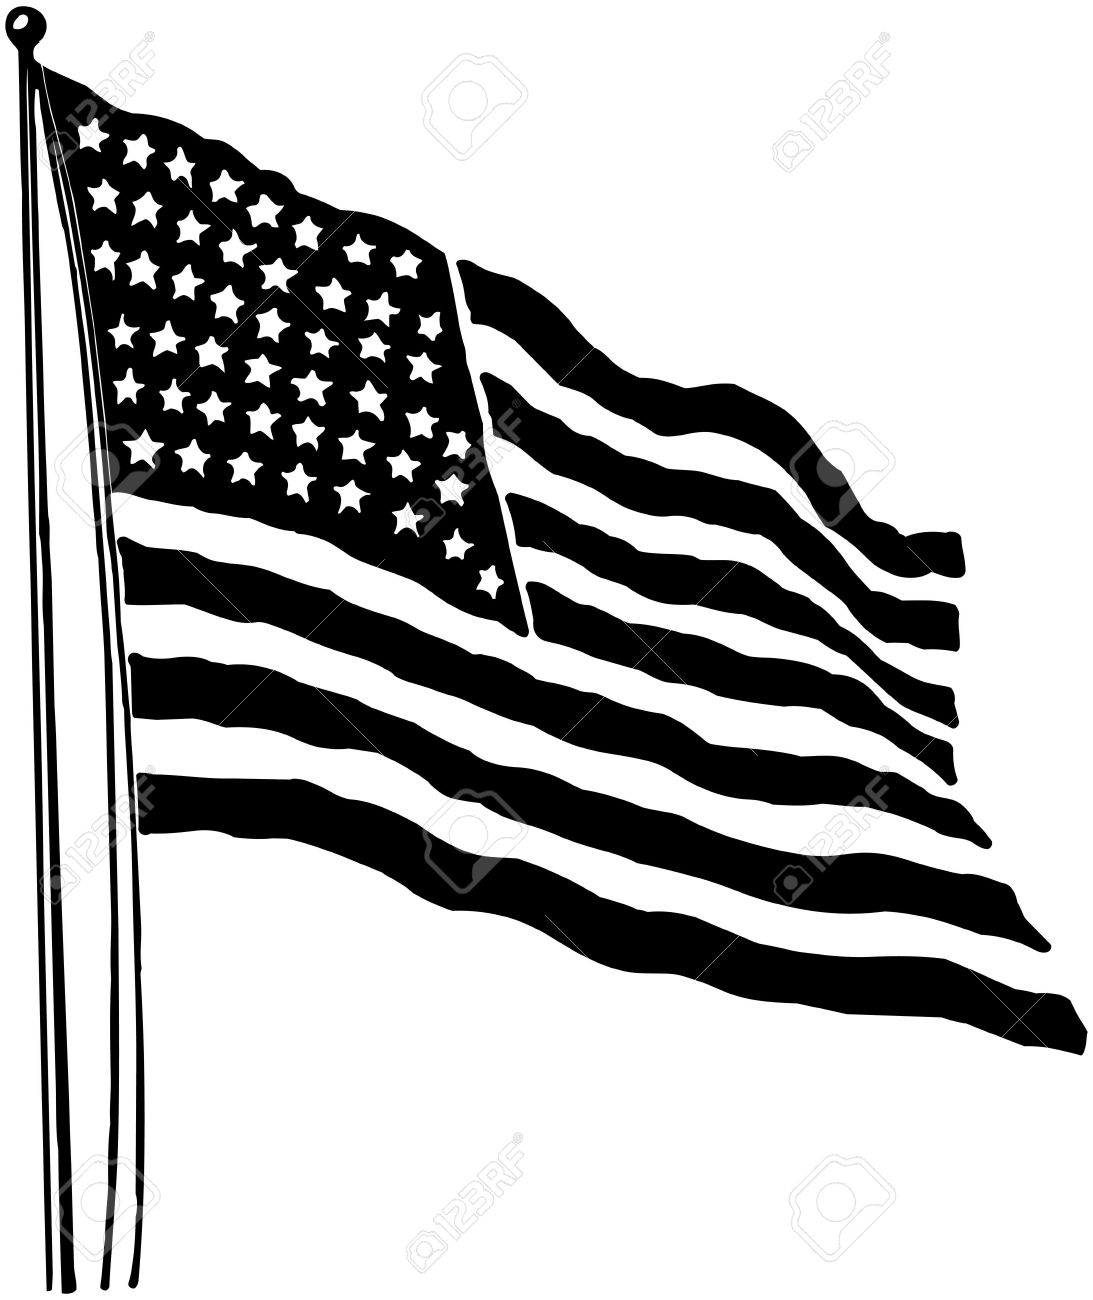 American flag waving black and white clipart graphic freeuse stock Us Flag Black And White | Free download best Us Flag Black And White ... graphic freeuse stock